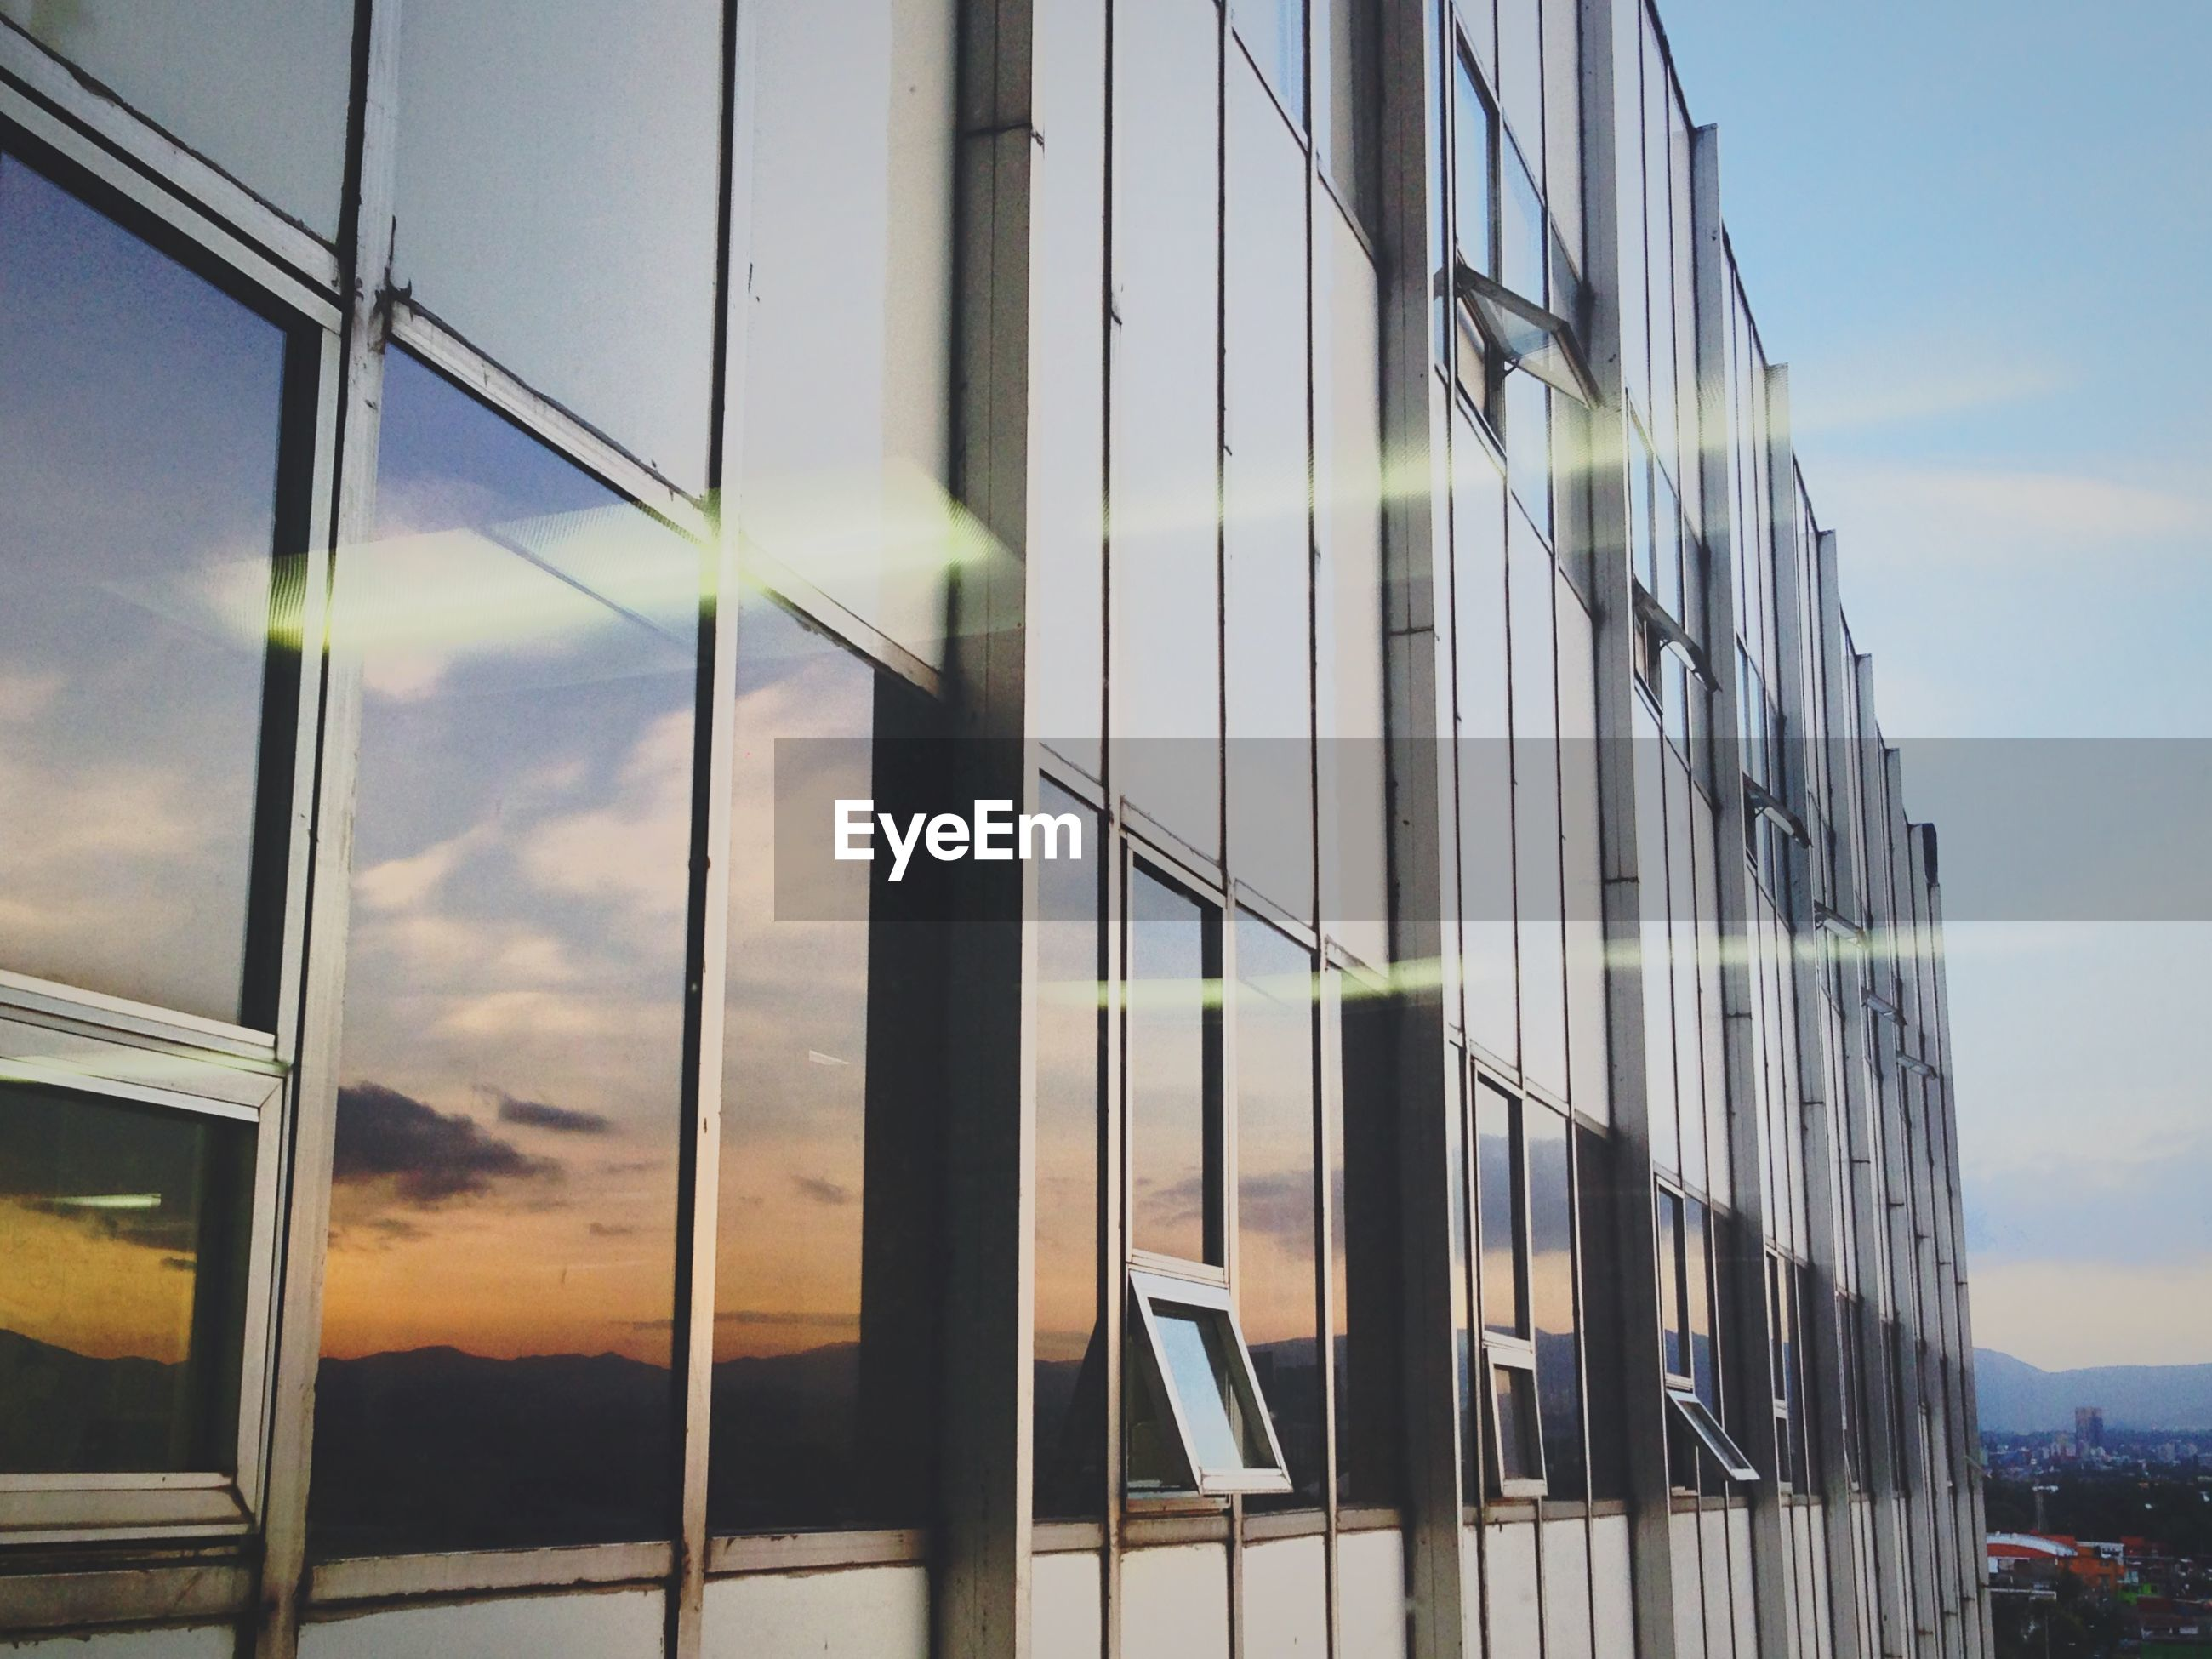 architecture, built structure, building exterior, low angle view, glass - material, window, sky, modern, reflection, building, office building, city, sunlight, glass, transparent, day, no people, outdoors, cloud - sky, cloud